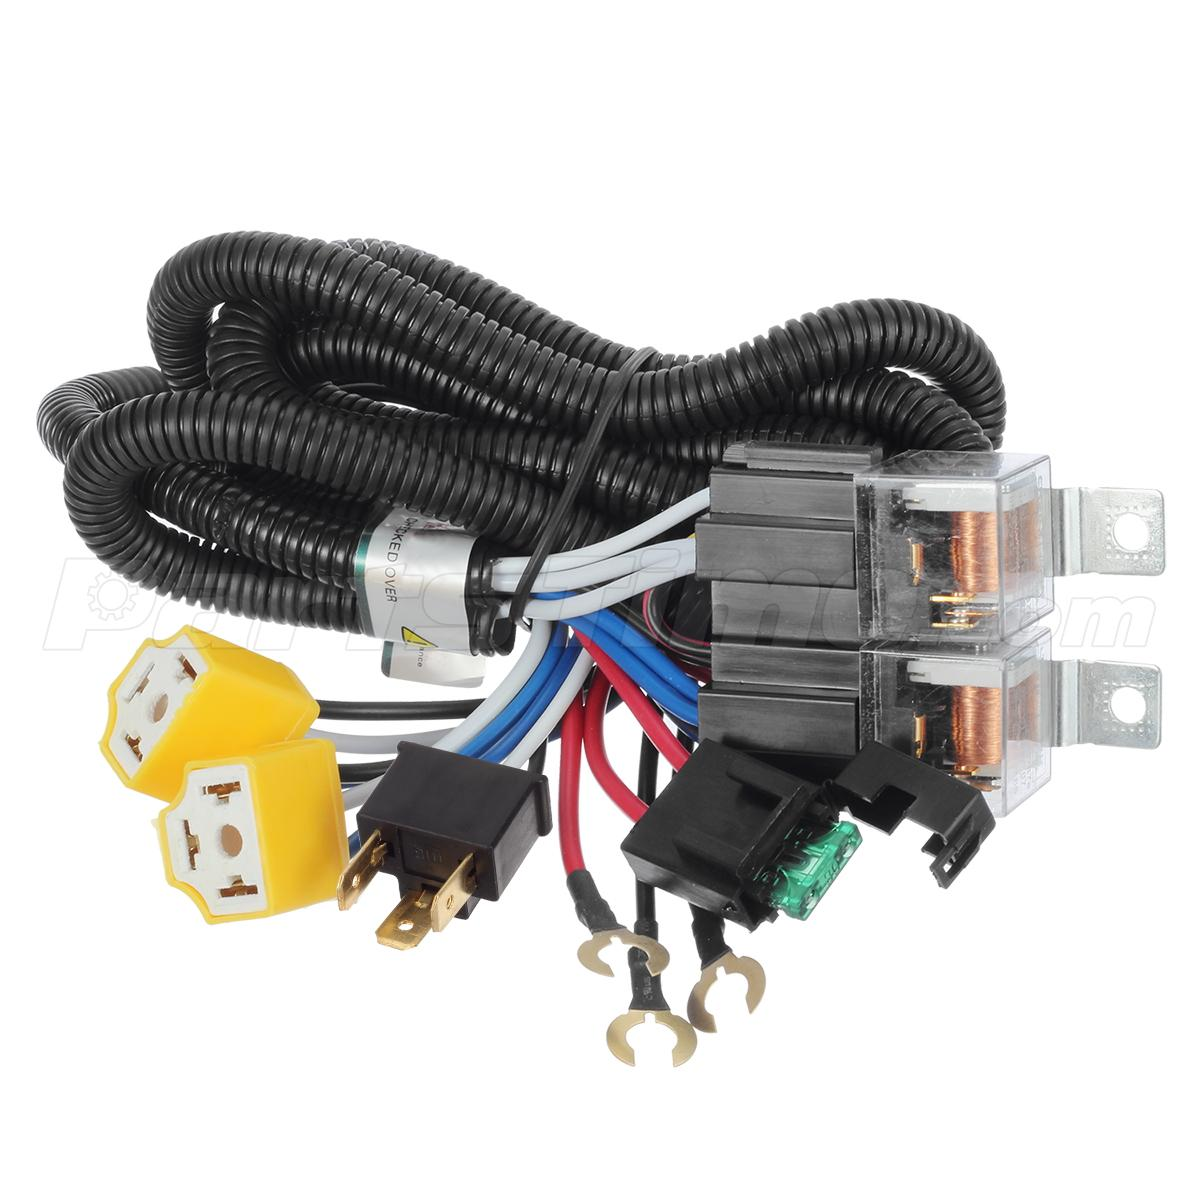 1x ceramic h4 headlight relay wiring harness 2 headlamp light bulb 1x ceramic h4 headlight relay wiring harness 2 headlamp light bulb socket plugs